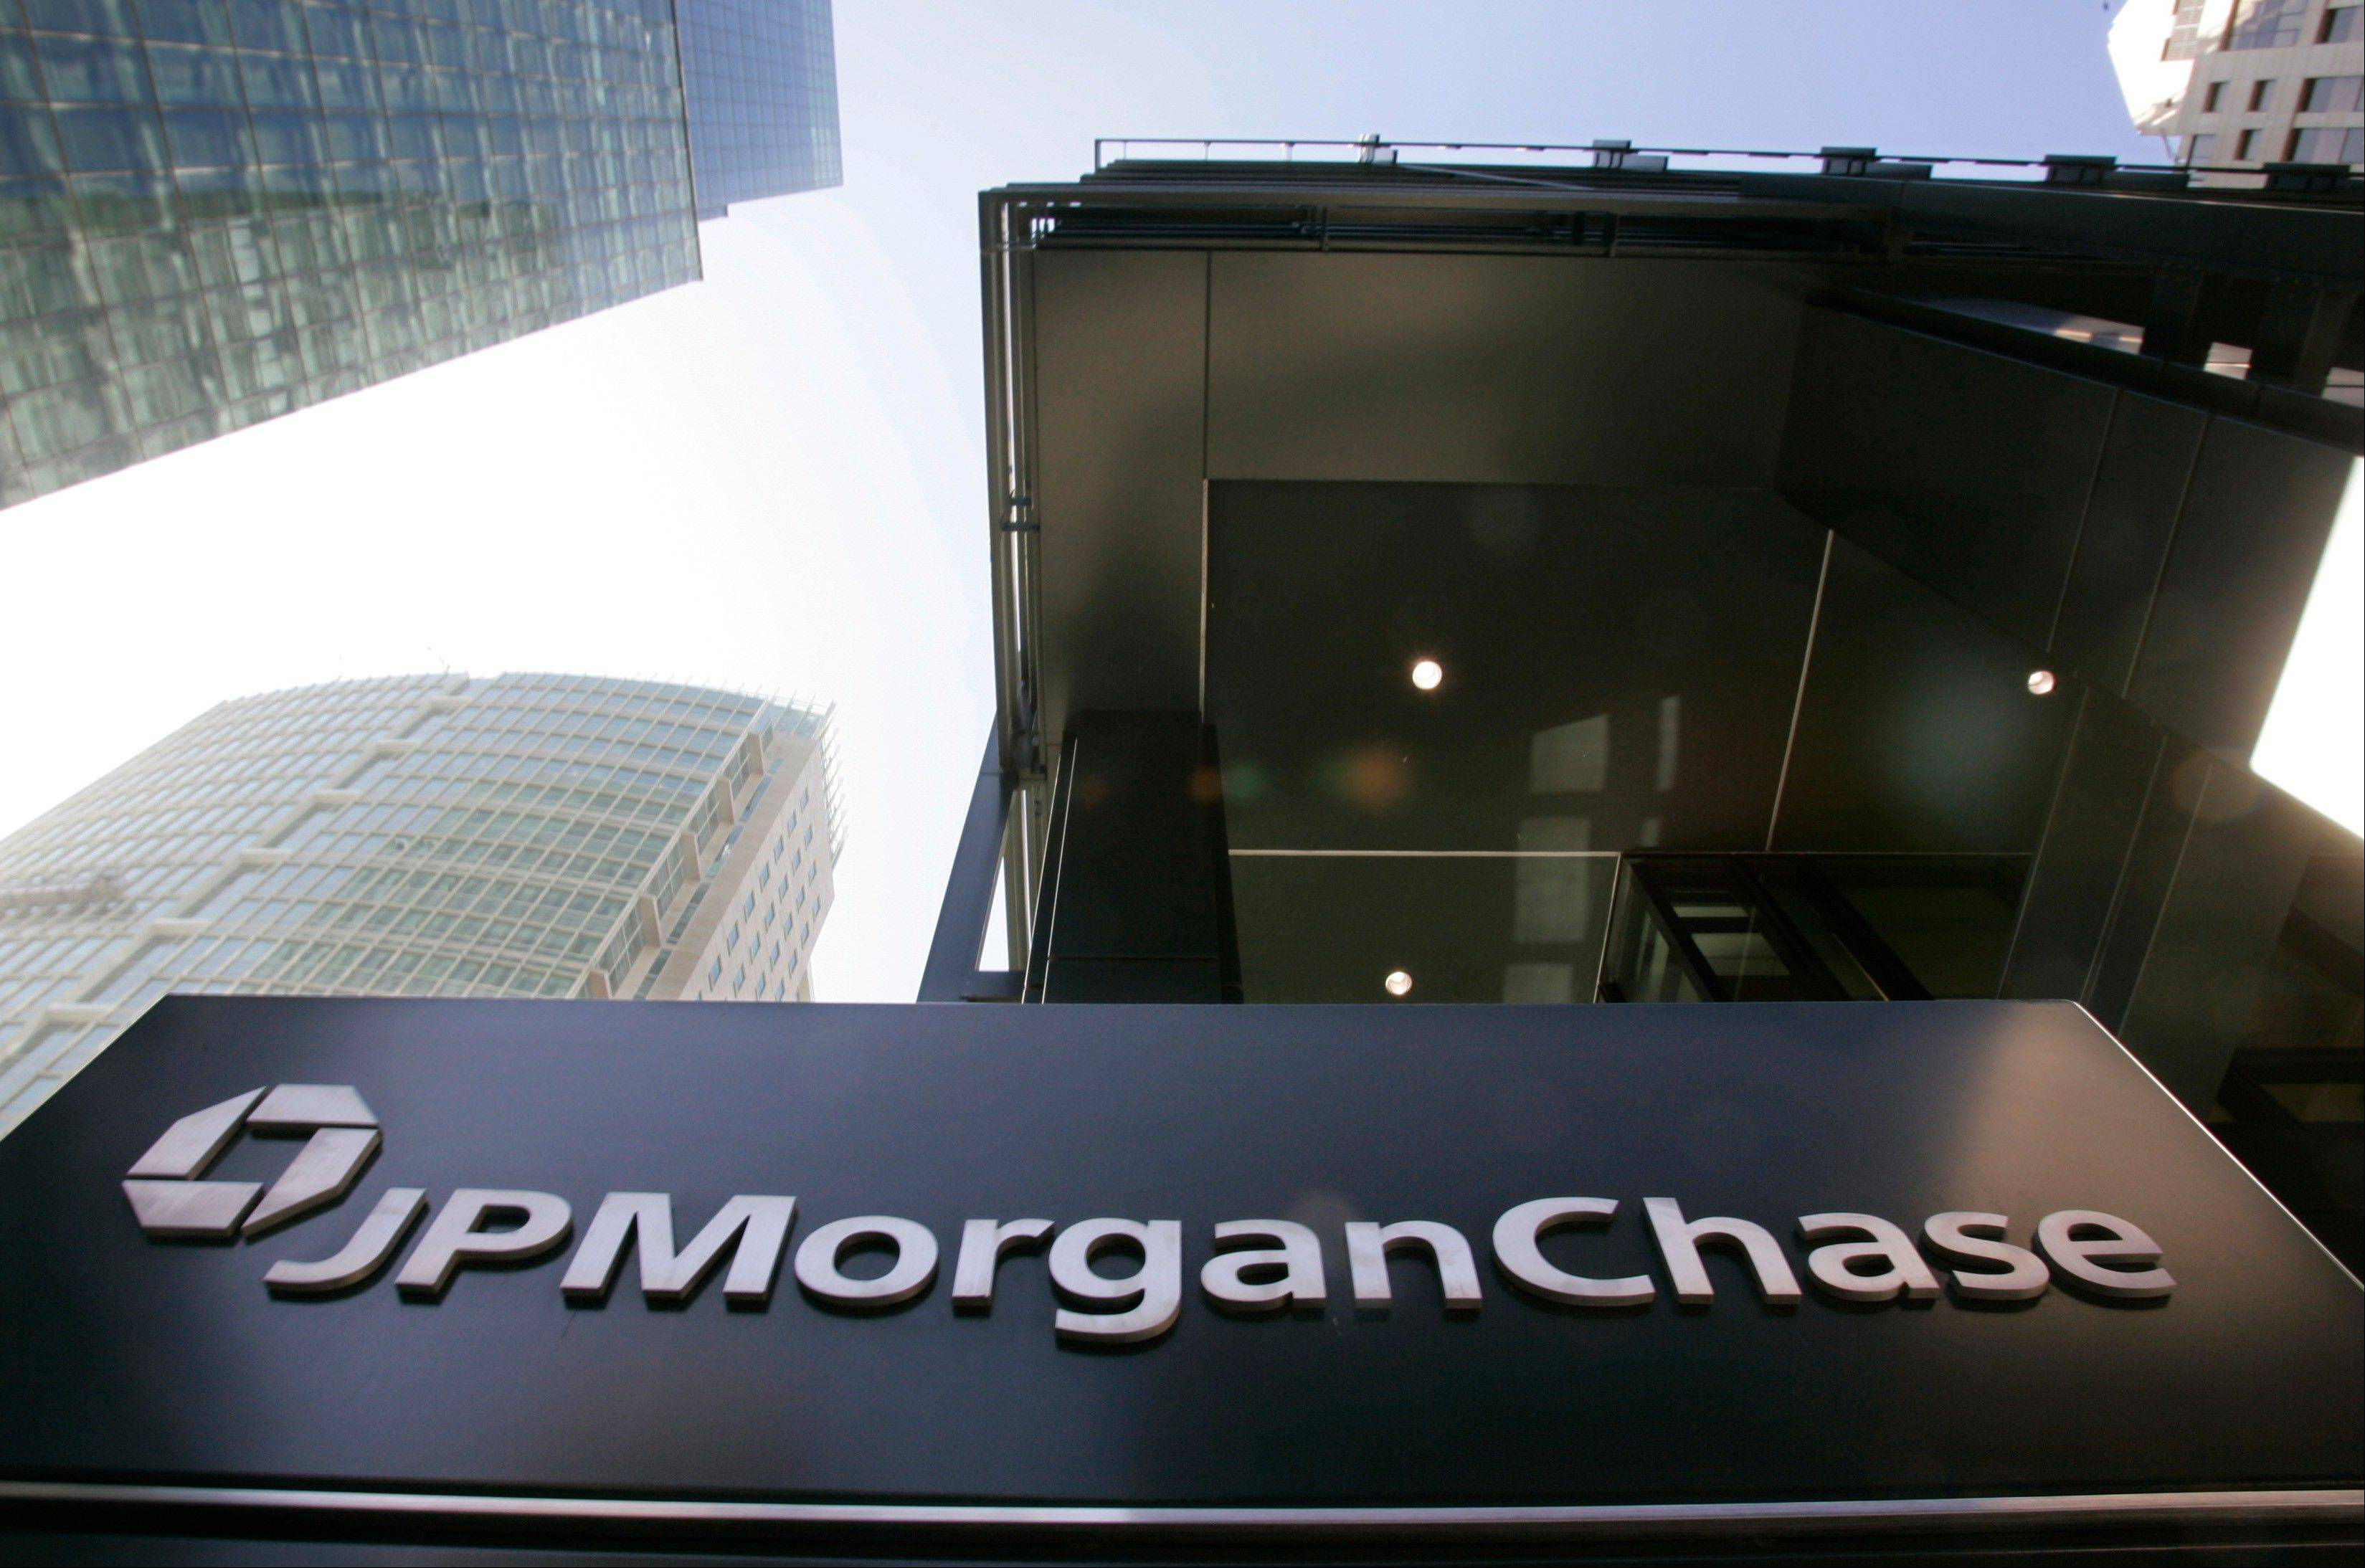 The New York attorney general�s office has hit JPMorgan Chase & Co. with a civil lawsuit, alleging that investment bank Bear Stearns � prior to its collapse and subsequent sale to JPMorgan in 2008 � perpetrated massive fraud in deals involving billions in residential mortgage-backed securities.